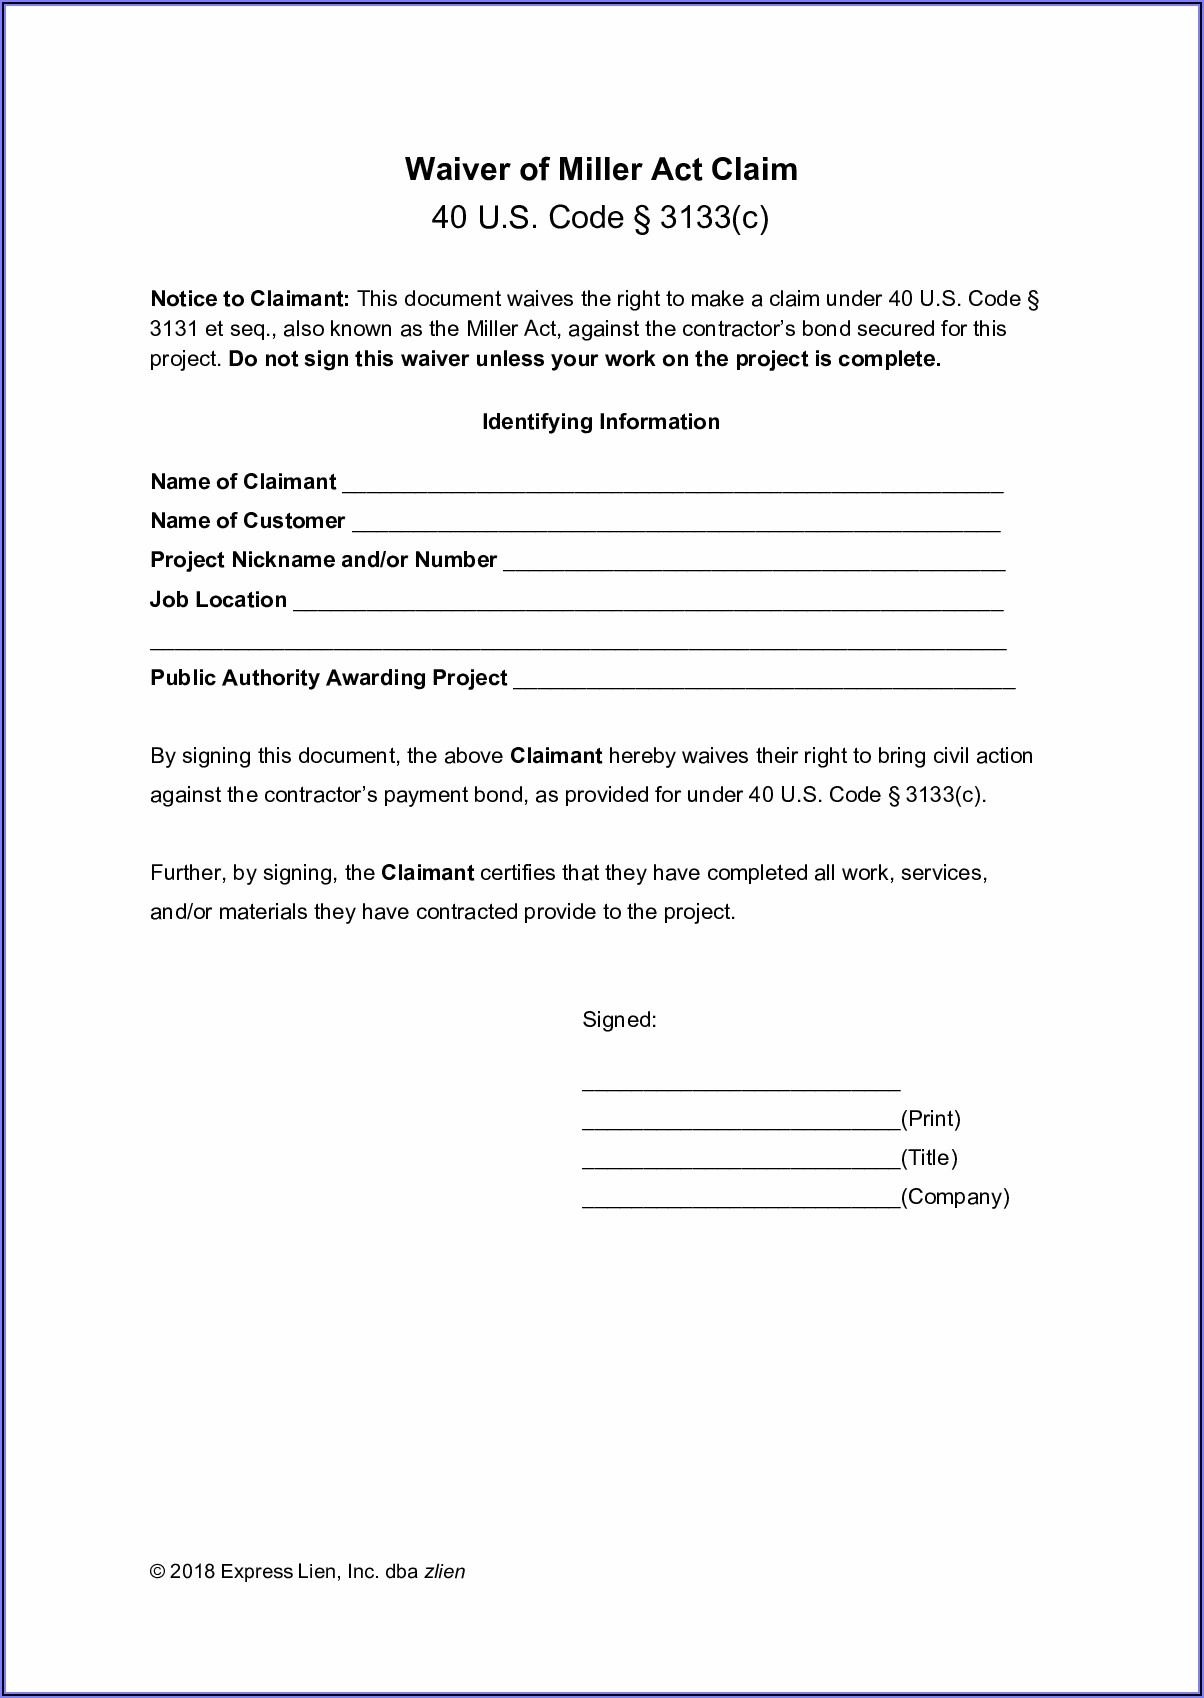 Generic Covid Waiver Form